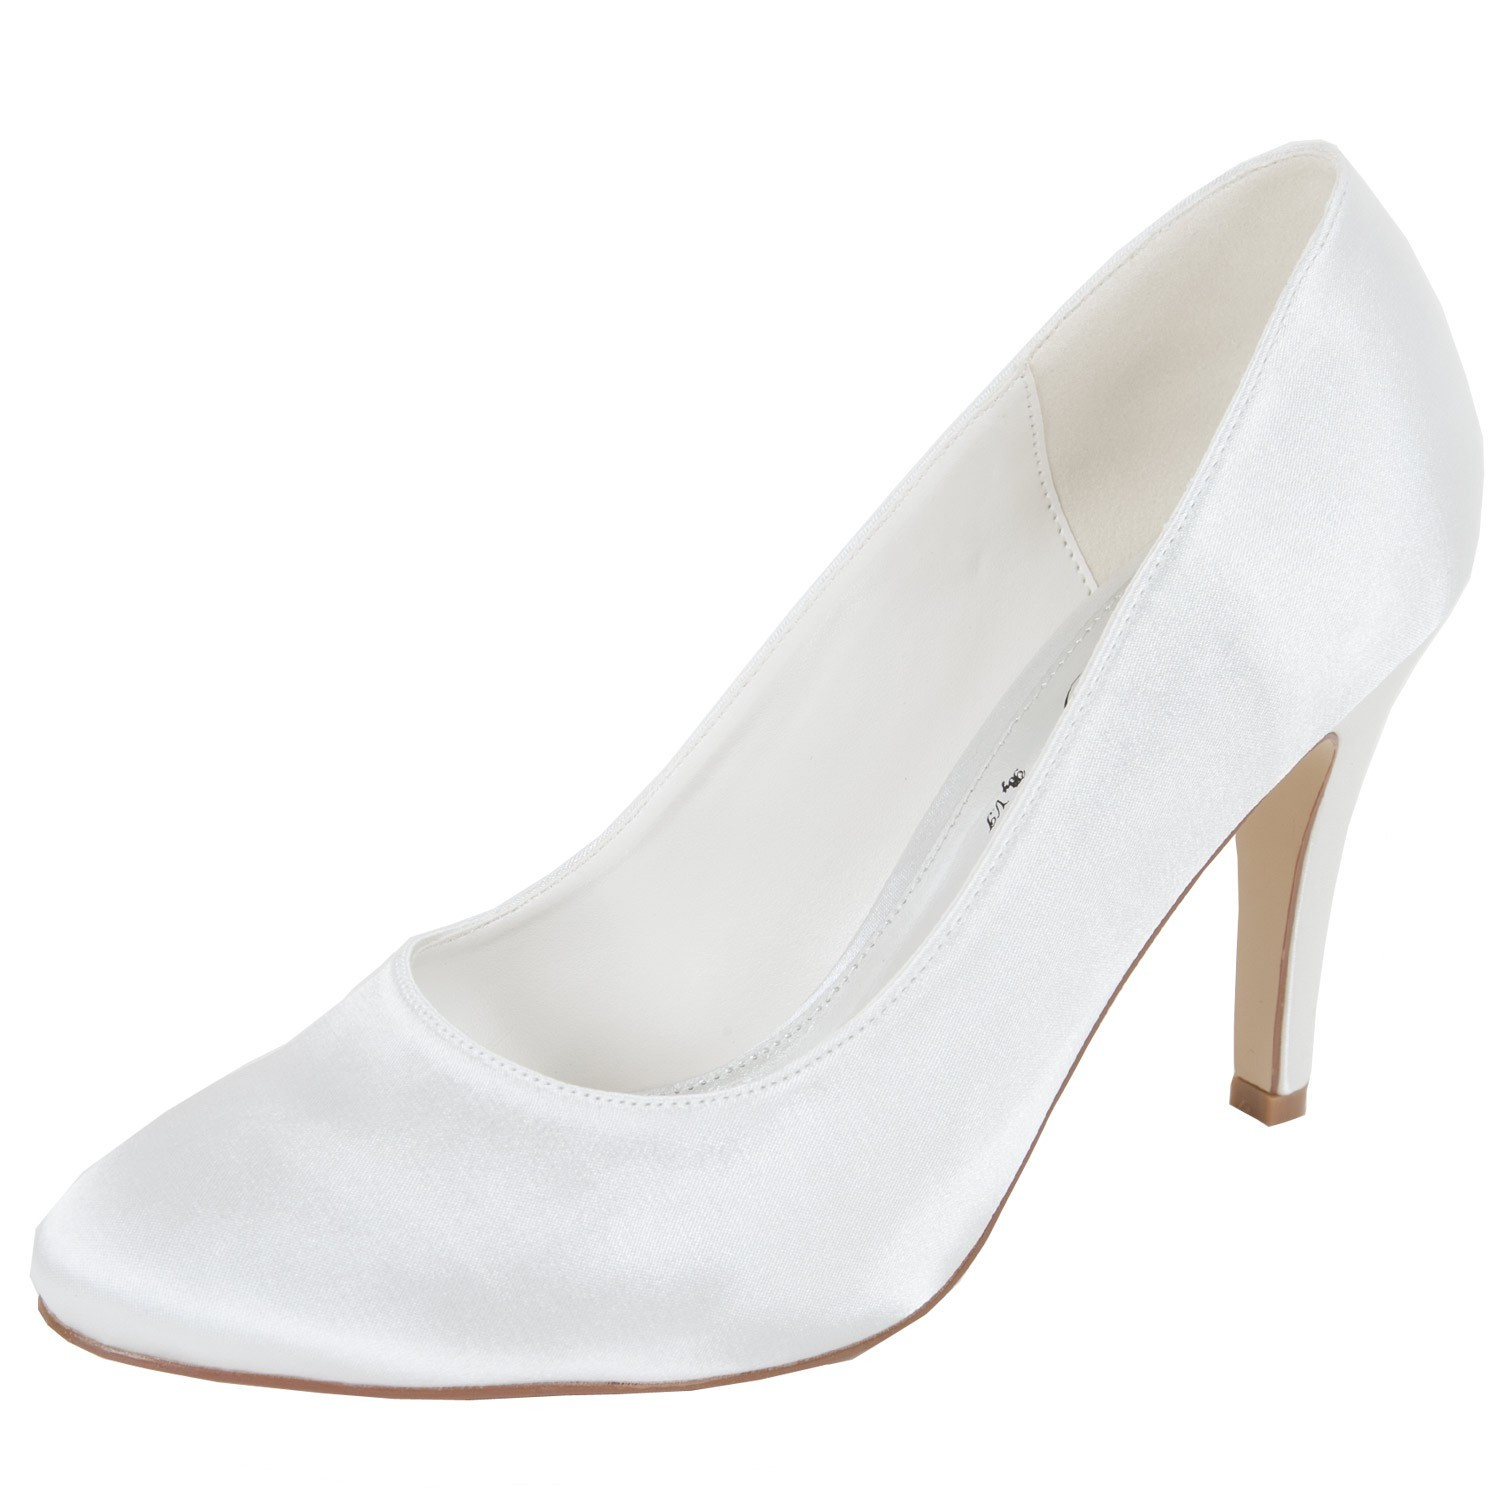 Chaussures mariage Mia